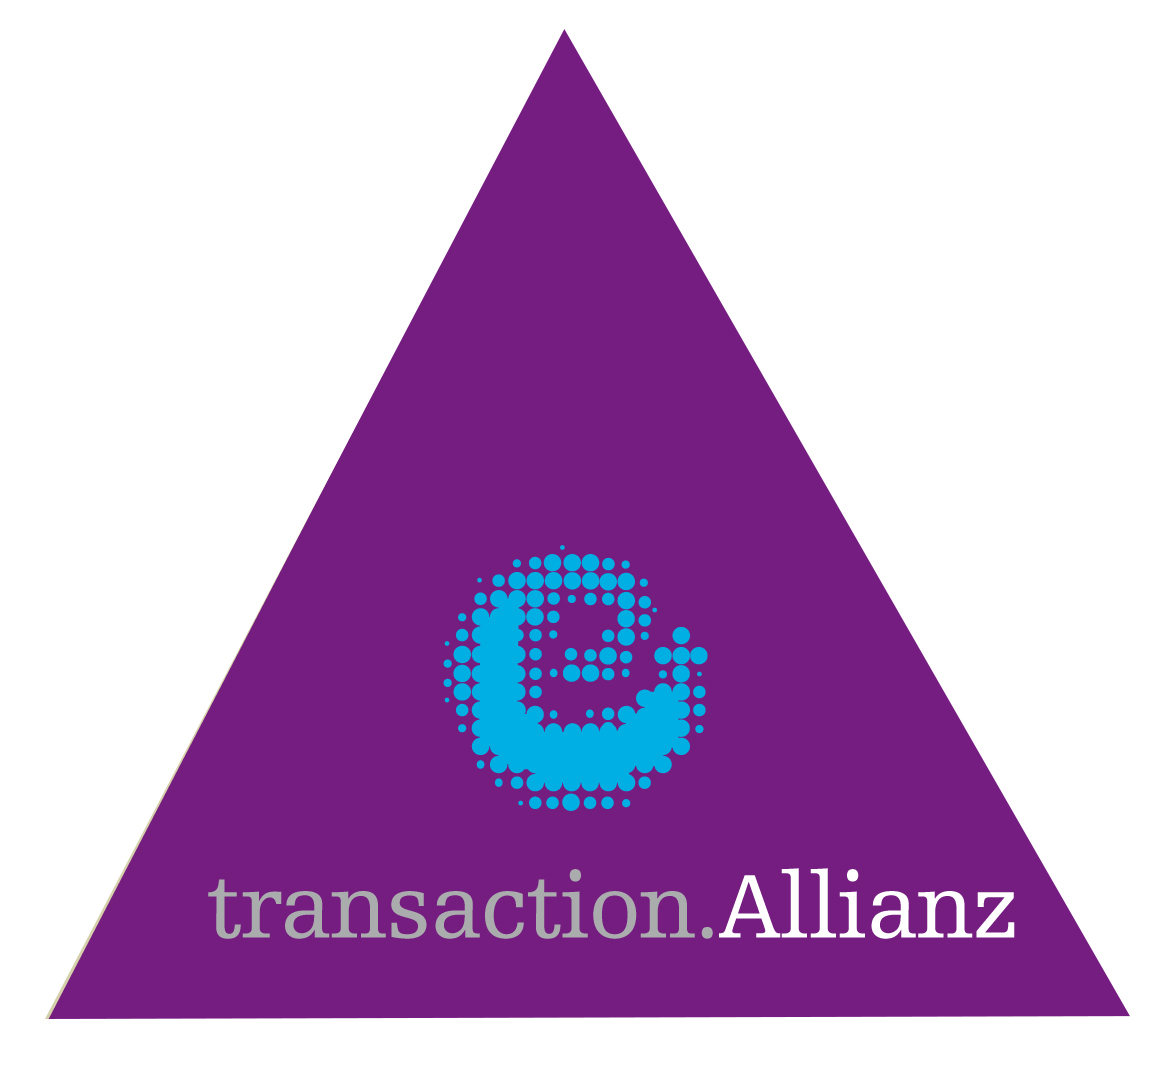 transaction neu